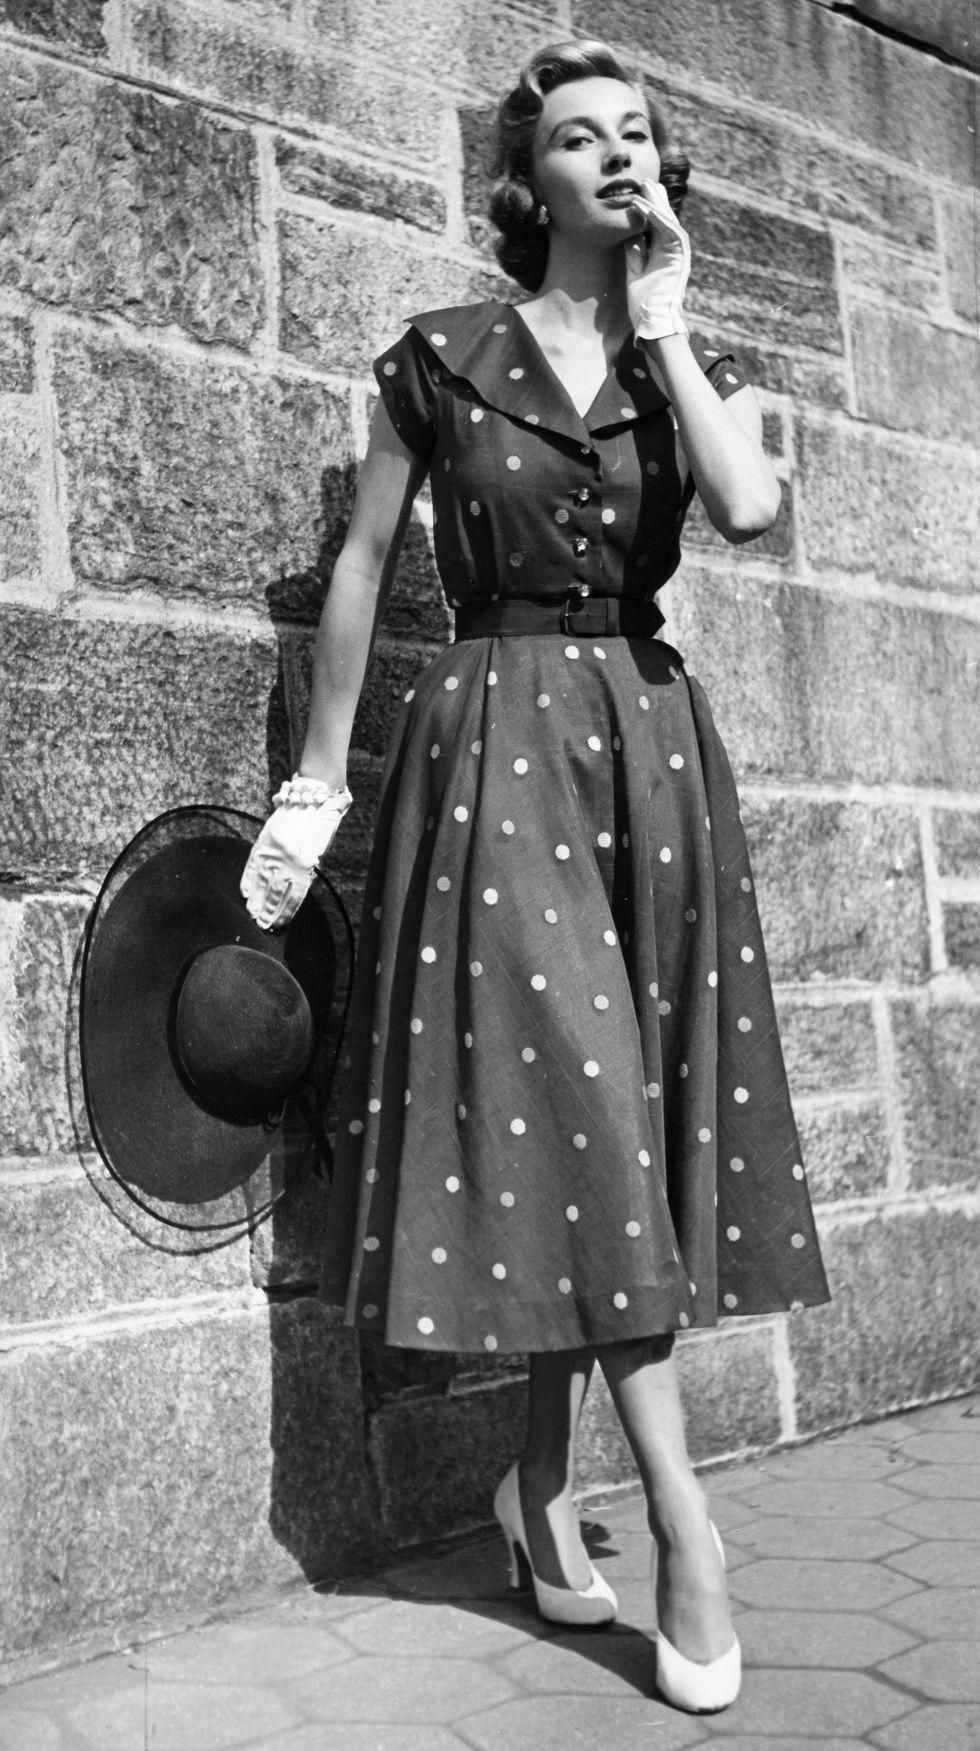 56a9807293d 1950s Fashion Photos and Trends - Fashion Trends From The 50s   fashionphotographs